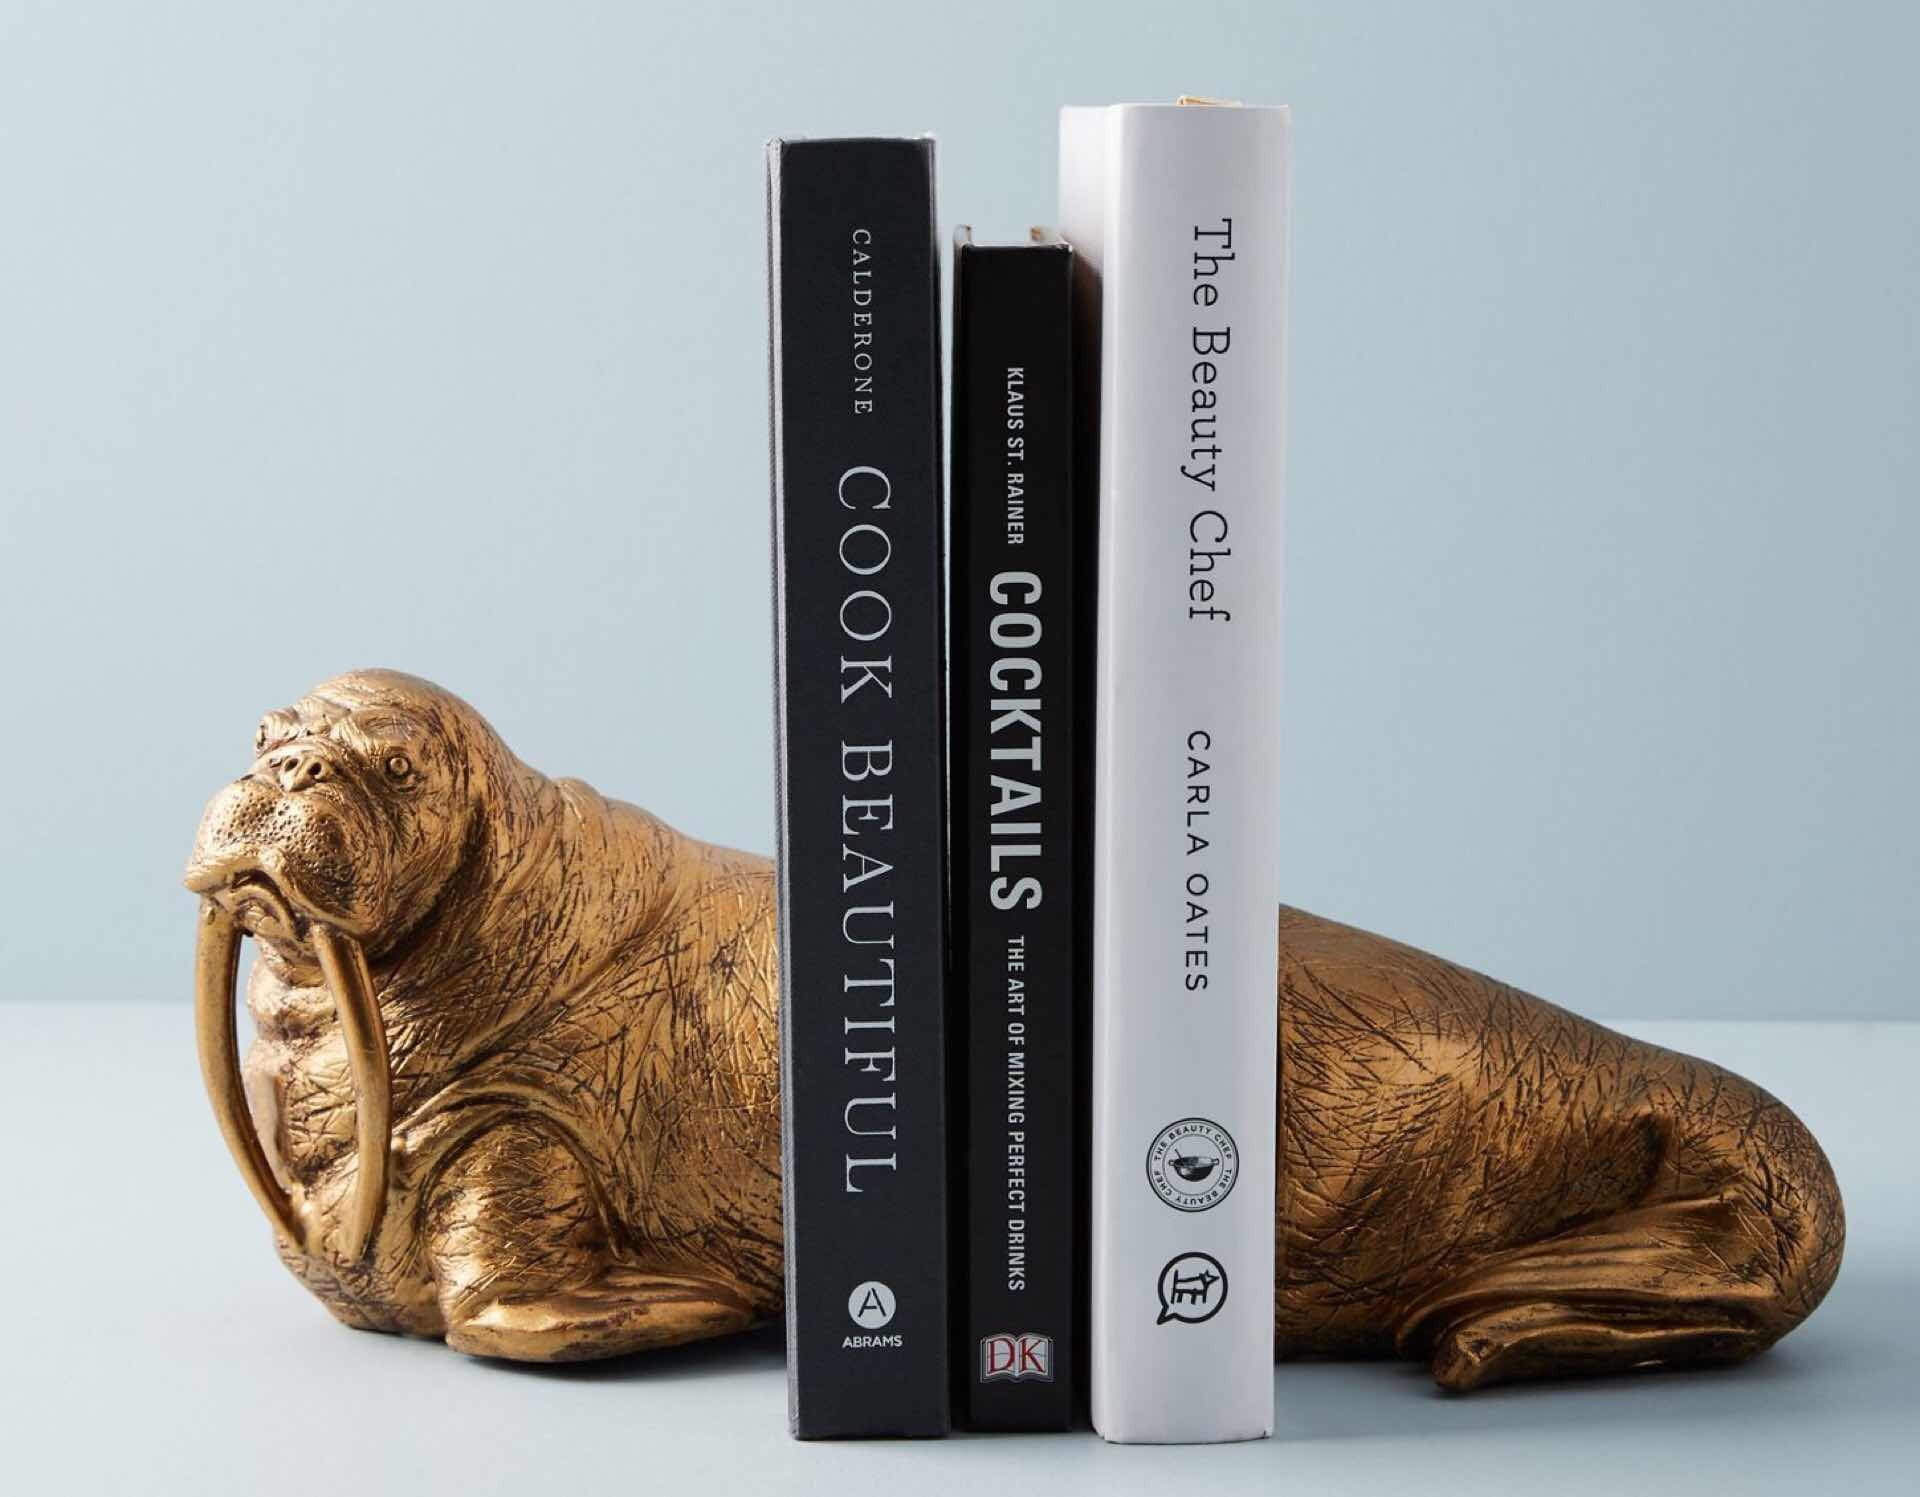 Who wouldn't want a friendly walrus pal to hold their books up? ($48)